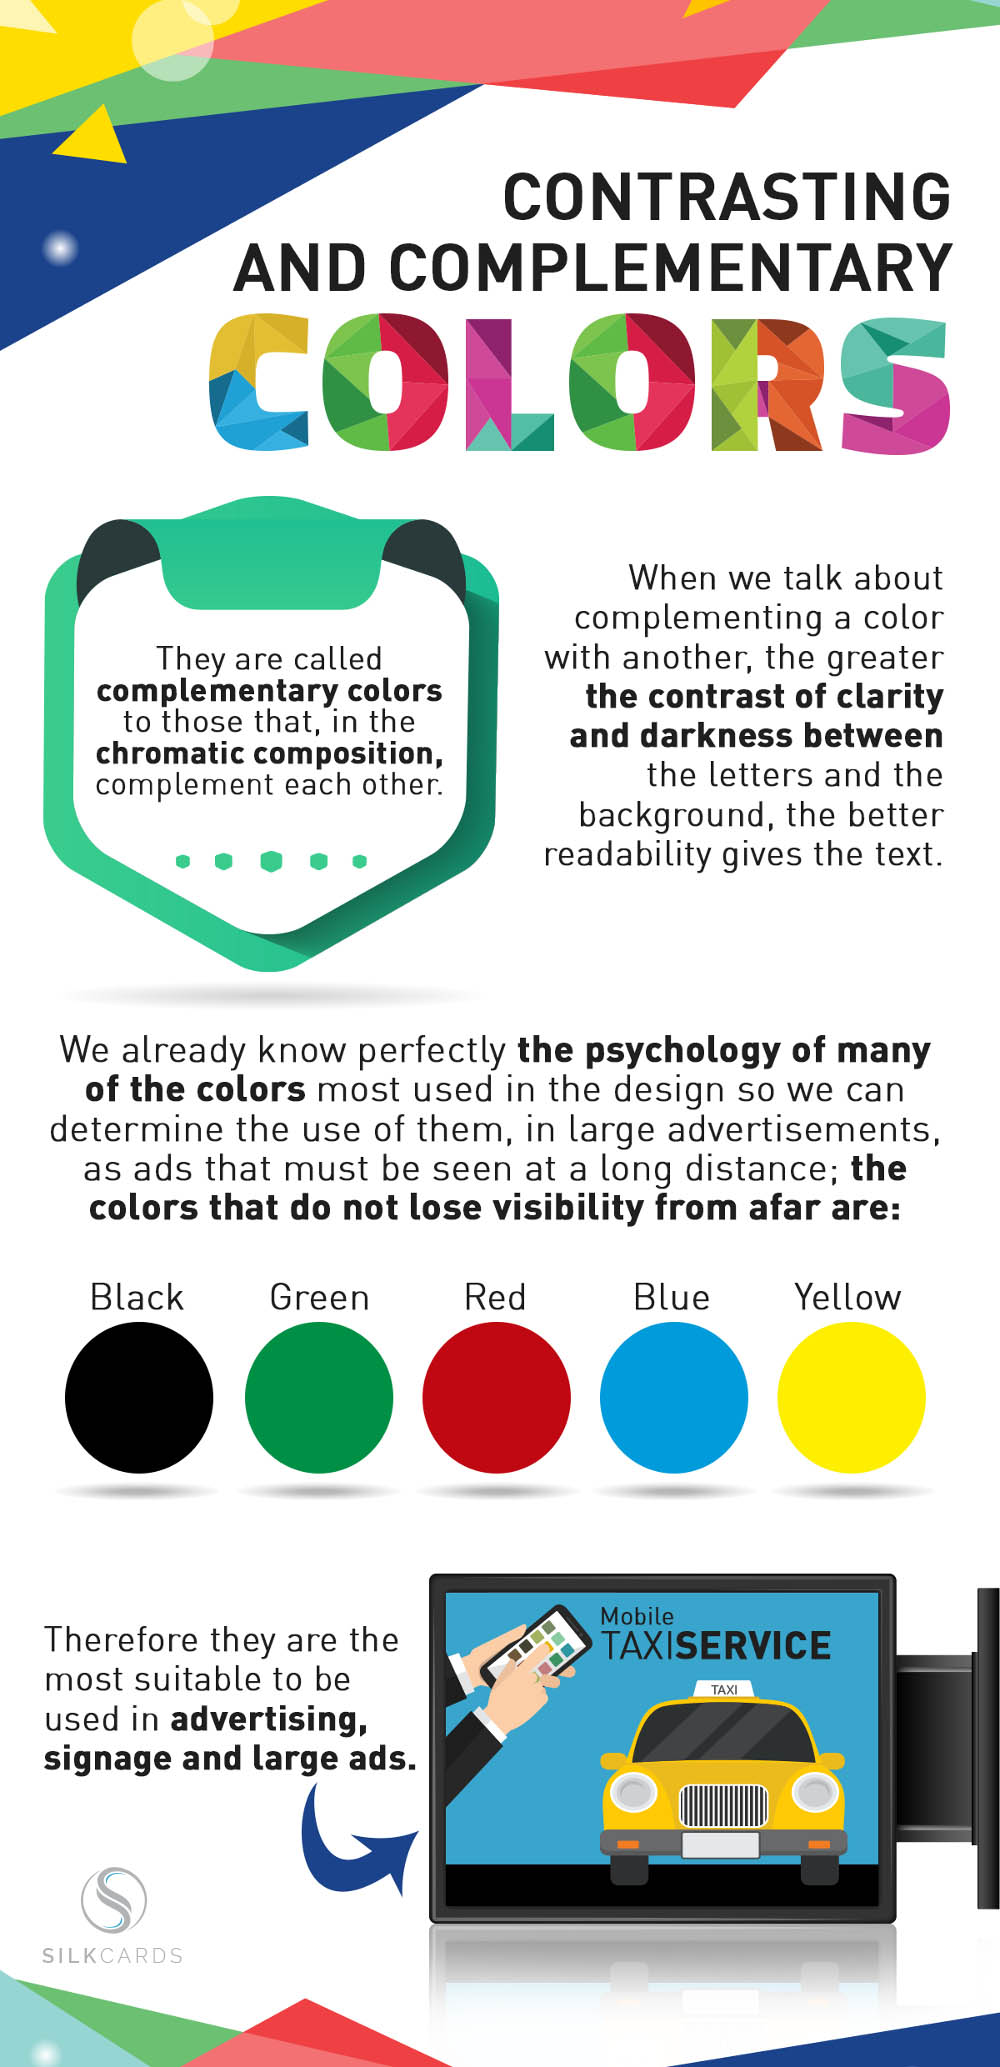 complementary and contrasting colors infographic